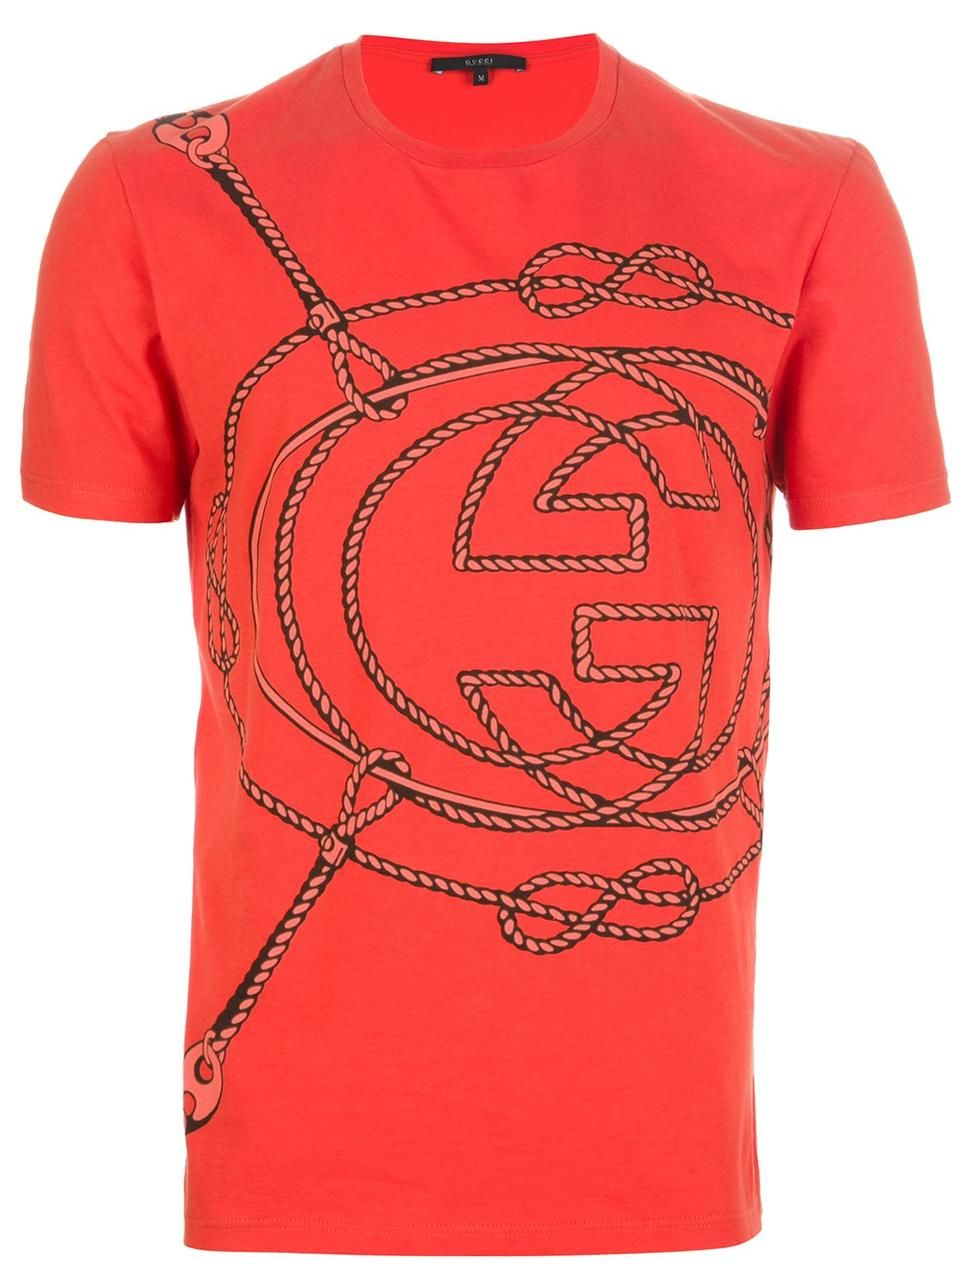 50aa5ad1 Gucci rope logo t-shirt | Coach is for girls. GUCCI, is for women ...